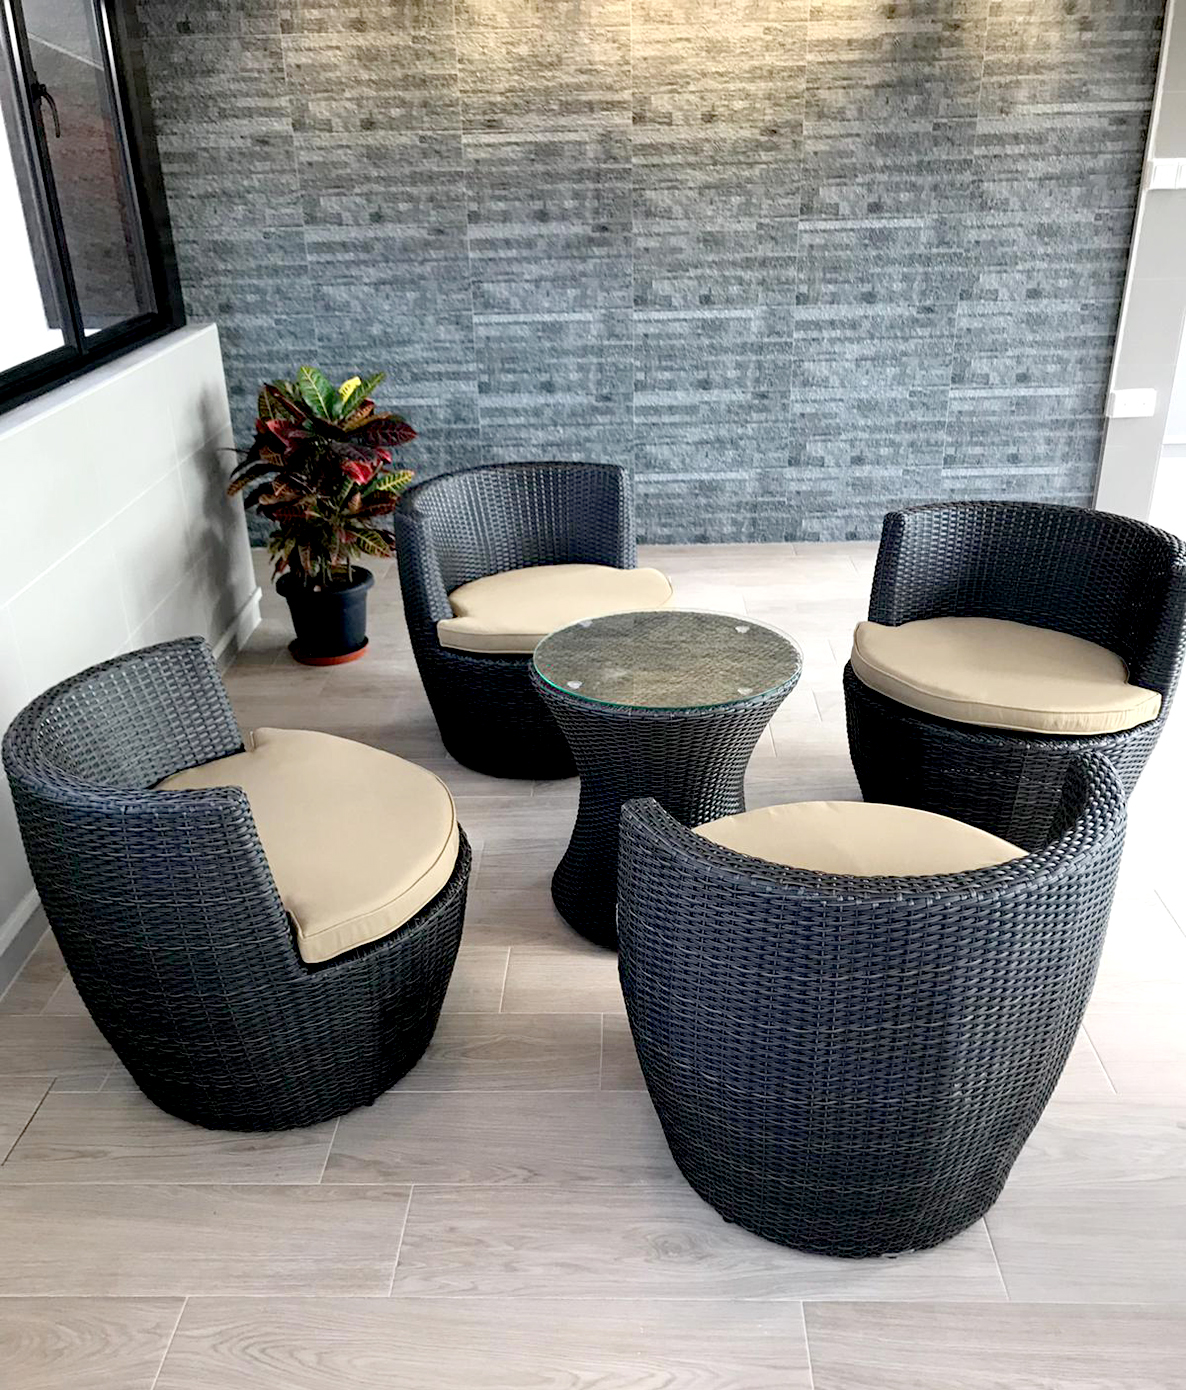 Singapore Motor Tyre Dealers Association - Geylang | Product seen:  [Tirra Outdoor Chair & Tirra Outdoor Coffee Table]